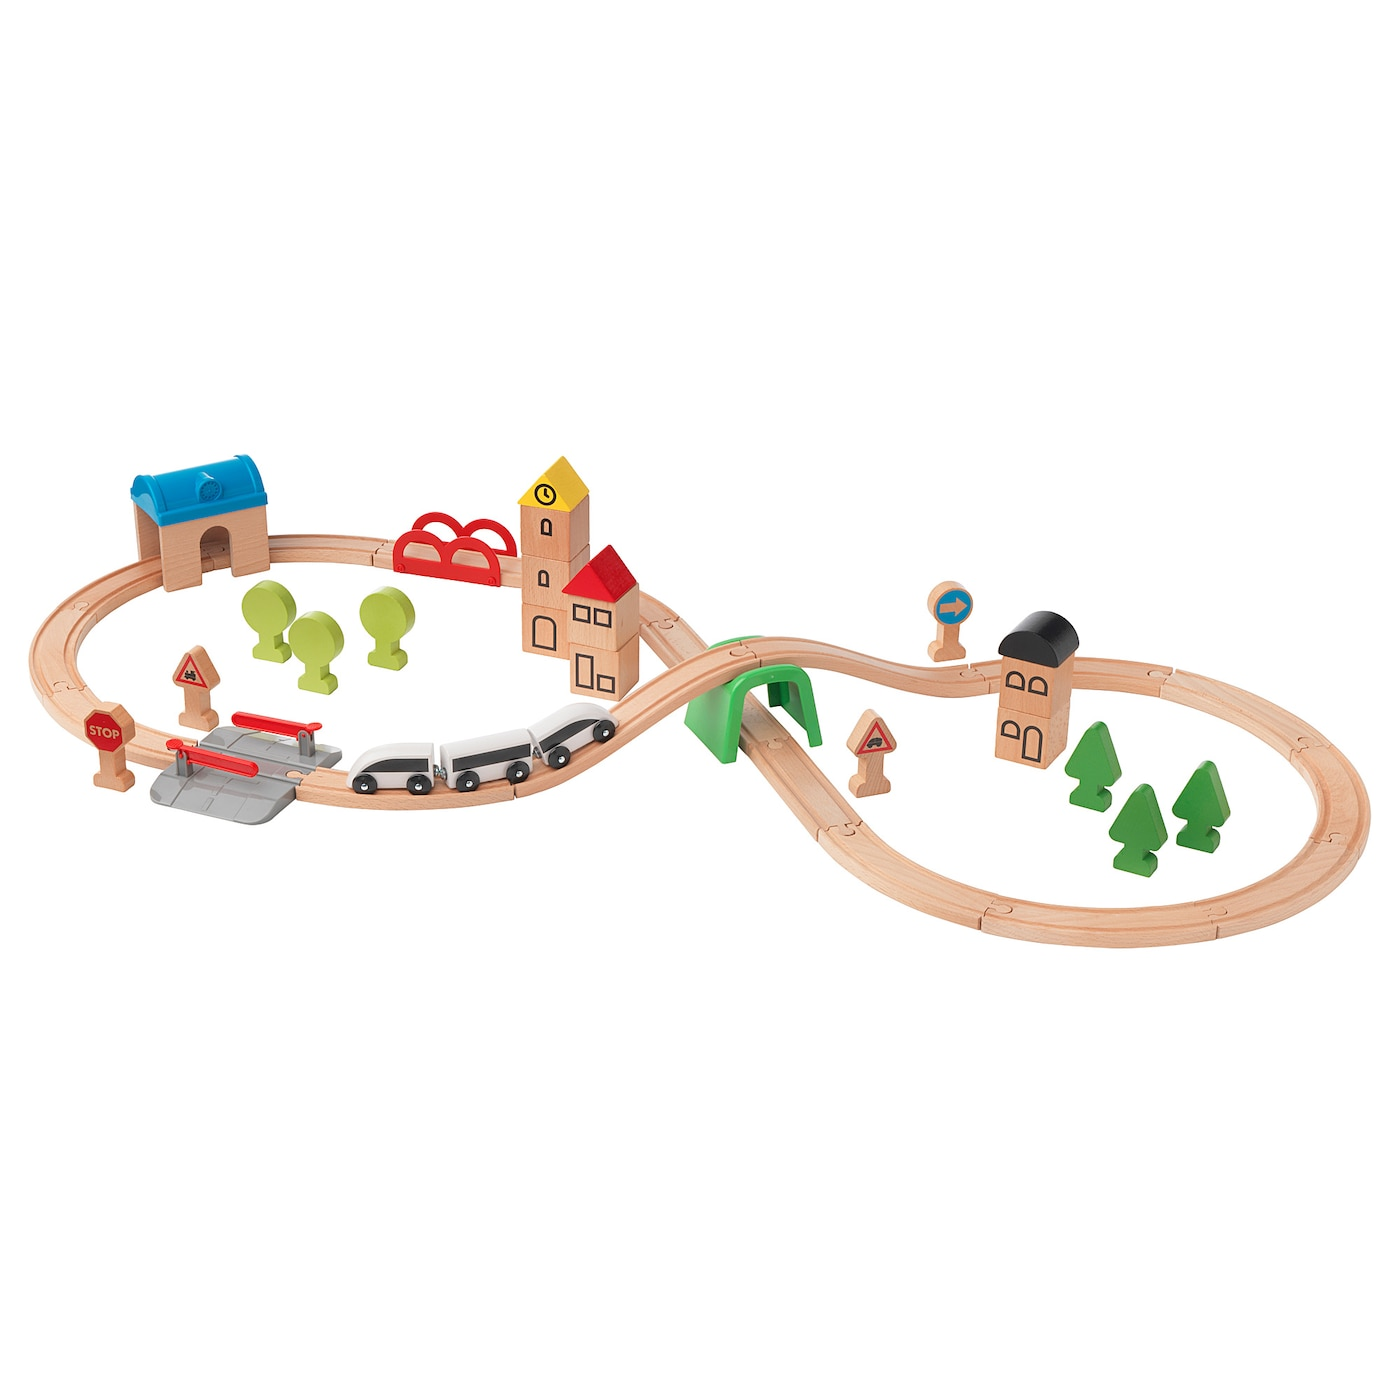 IKEA LILLABO 45-piece train set with rail Combines with most other railway systems on the market.